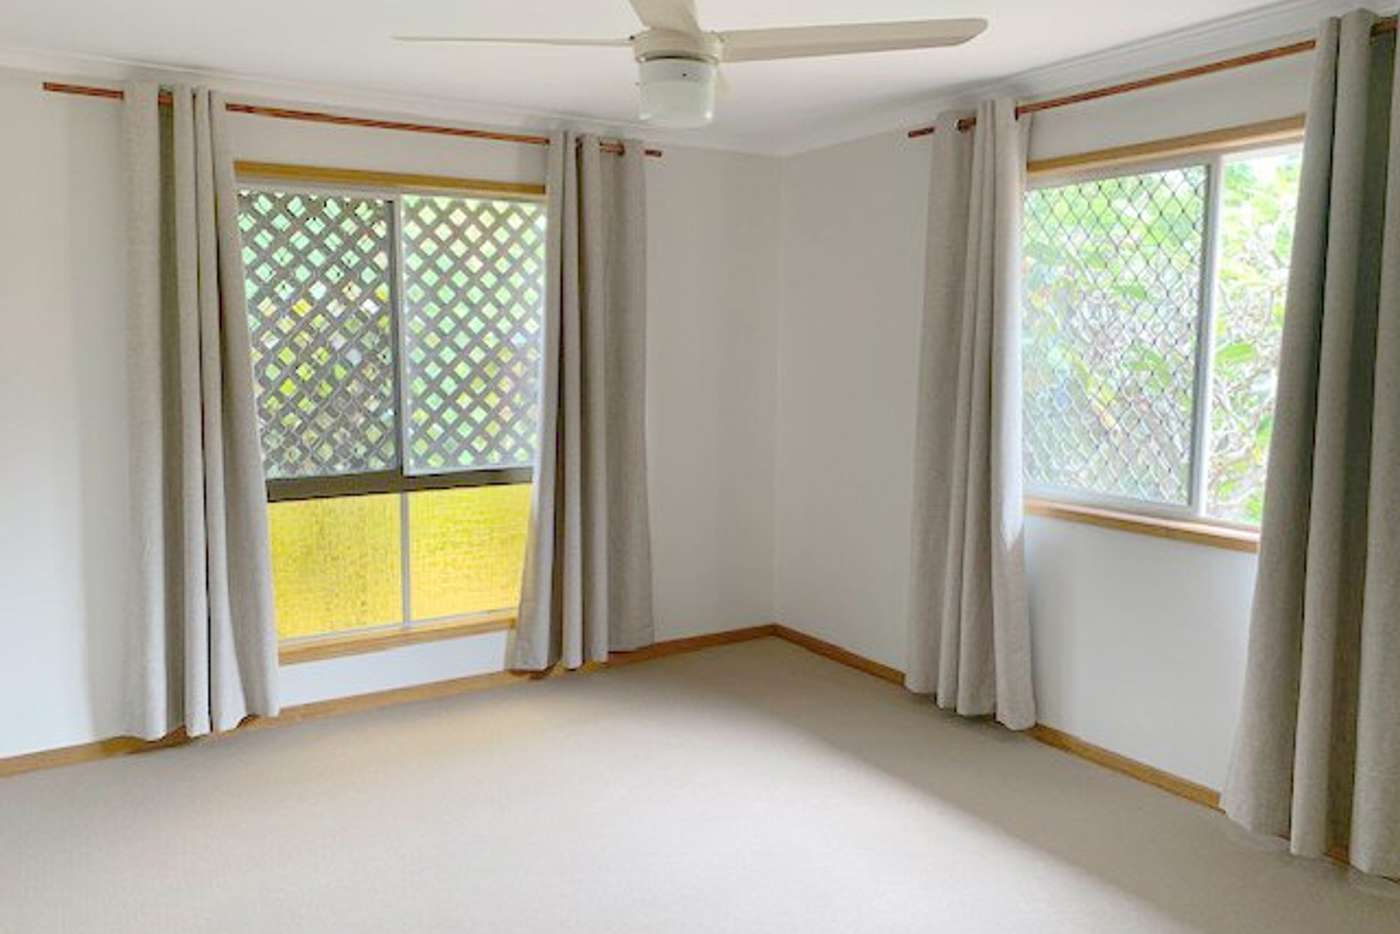 Sixth view of Homely house listing, 26 Zephyr Street, Scarness QLD 4655